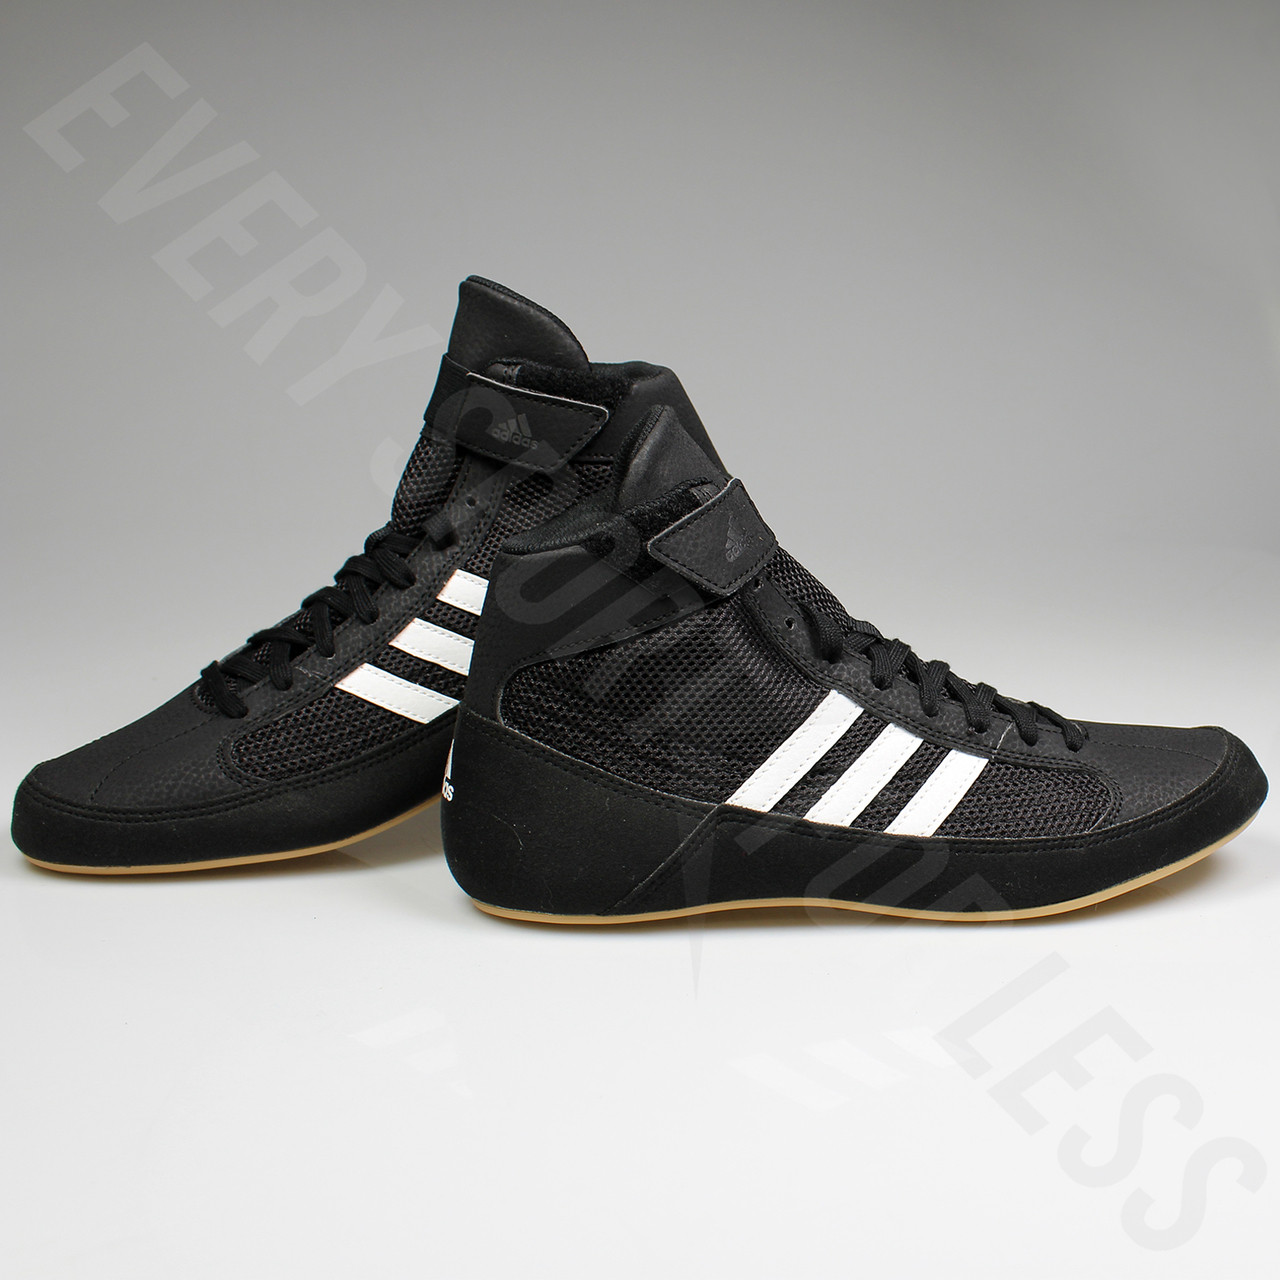 best cheap 0d6a1 8c97d ... Adidas HVC 2 Mens Wrestling Shoes AQ3325 - Black   White